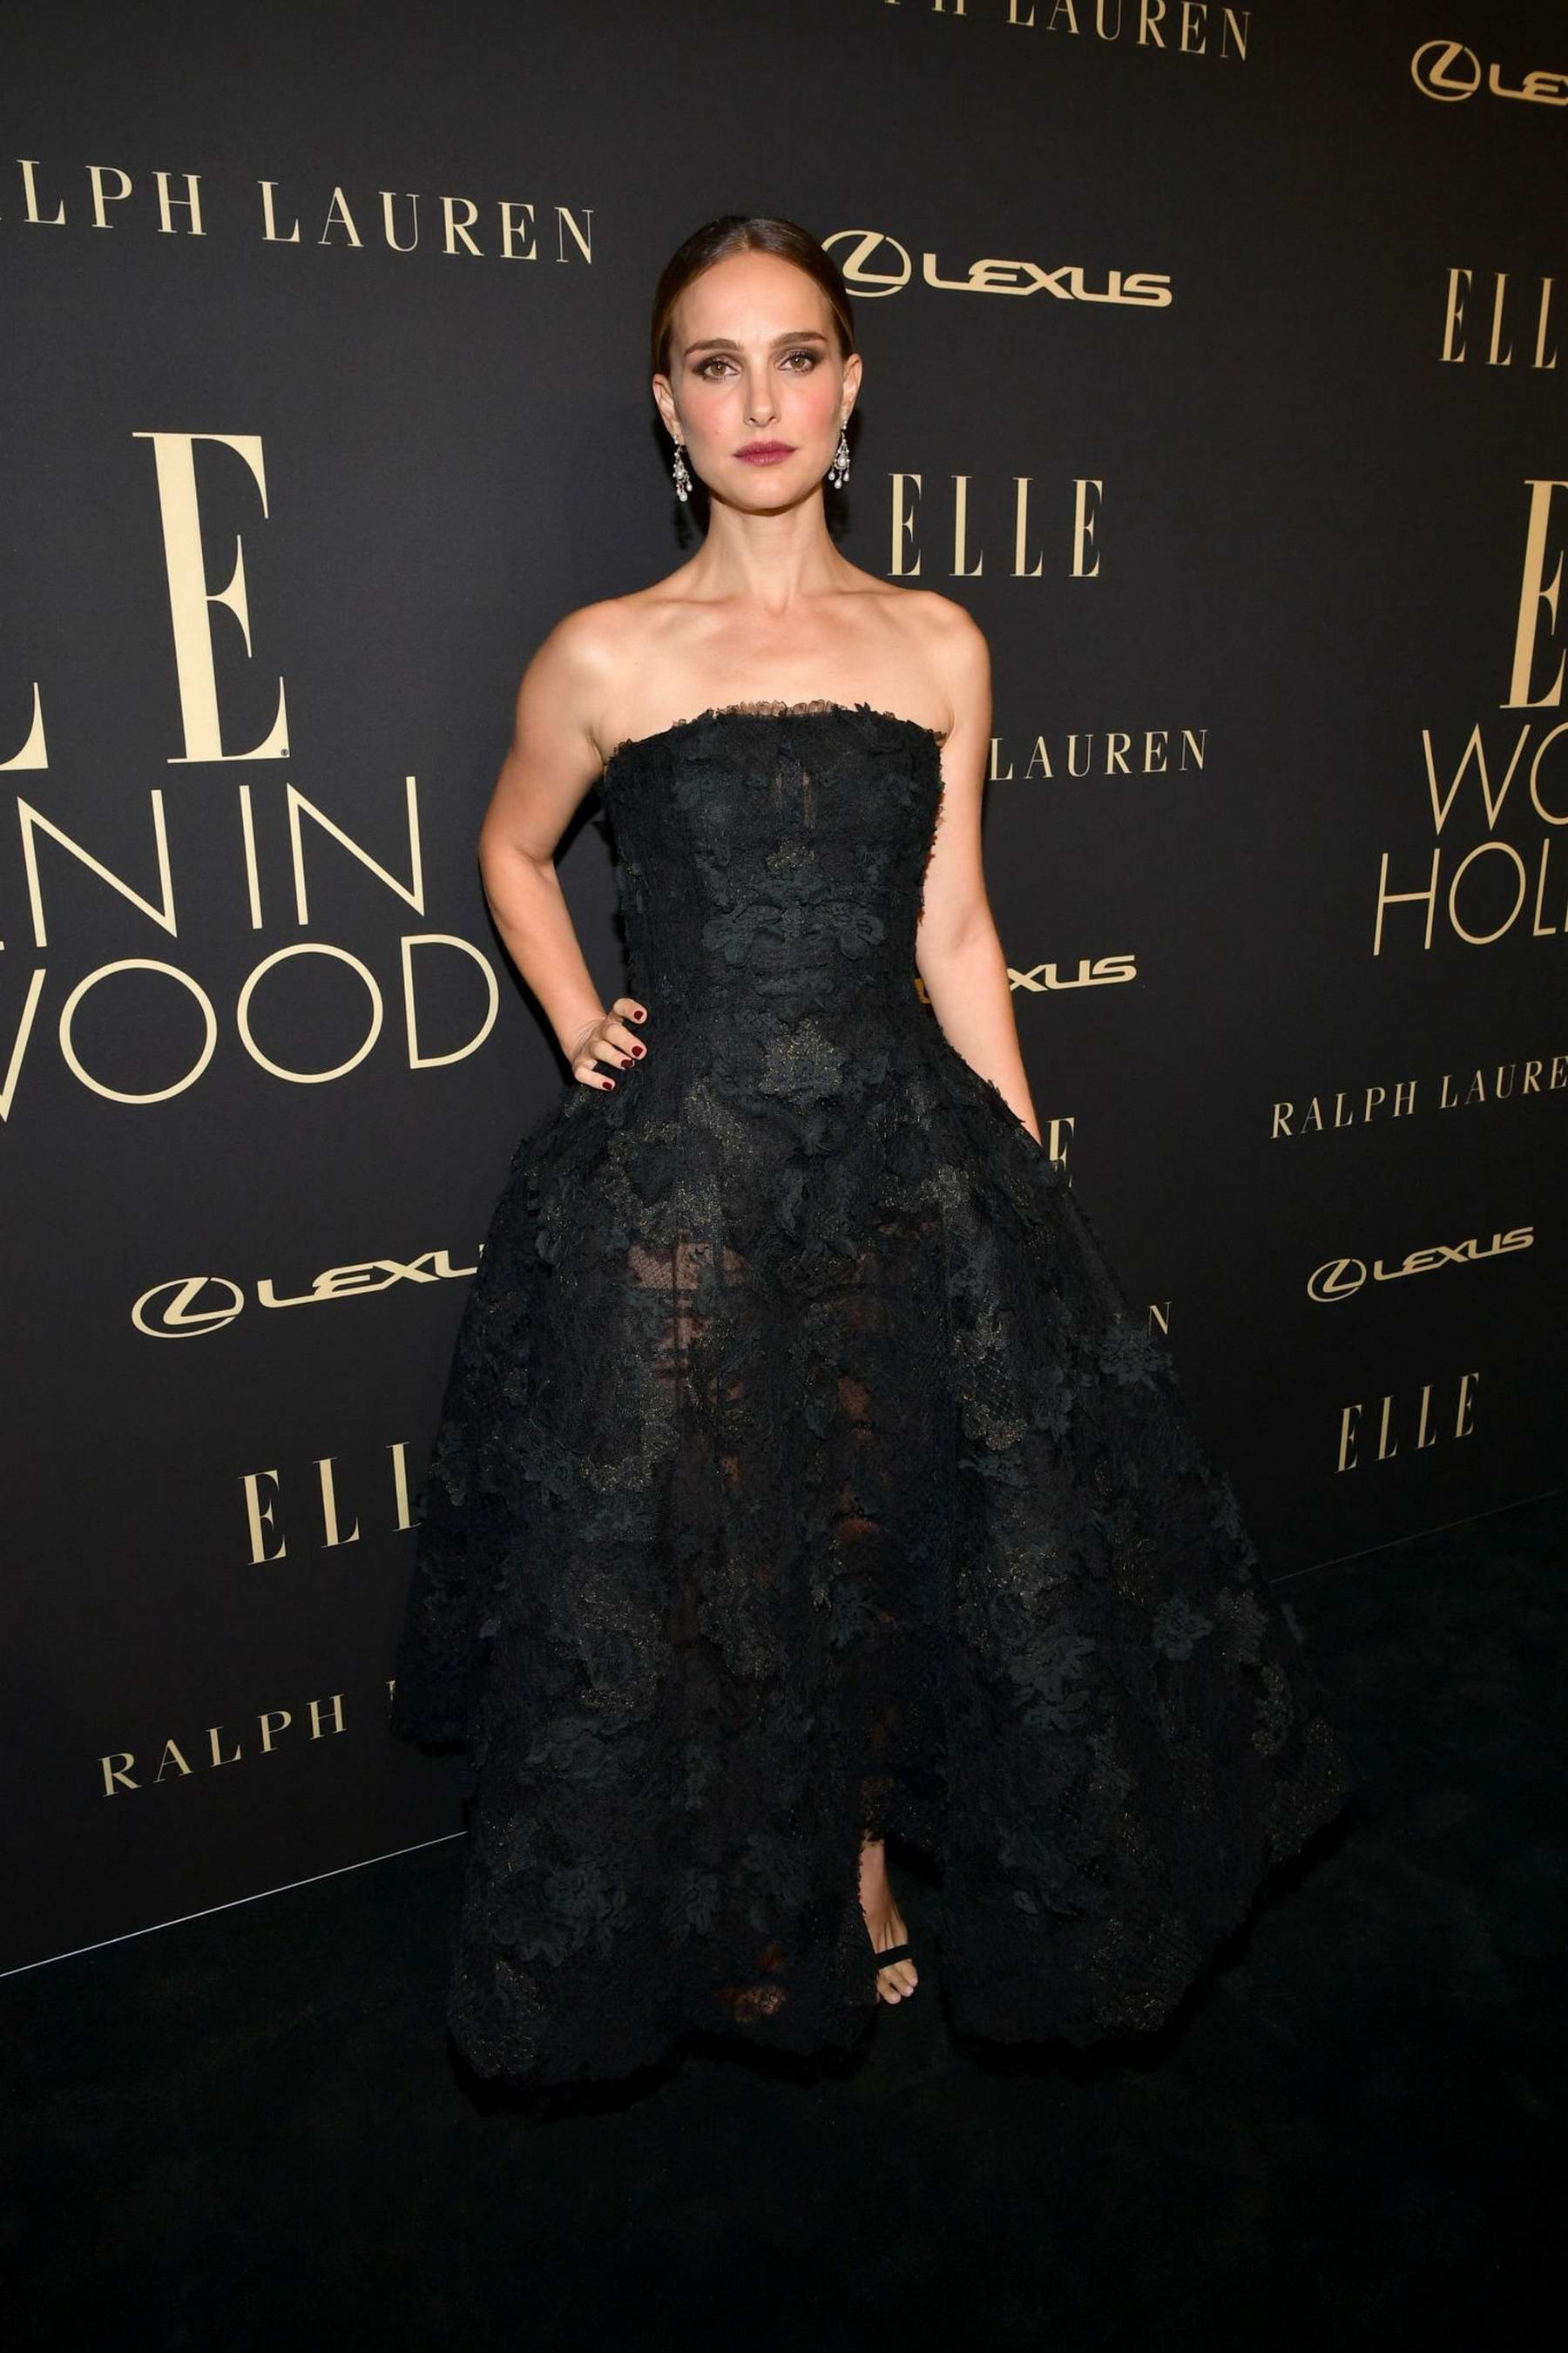 Natalie Portman attends ELLE's 26th Annual Women In Hollywood Celebration at The Four Seasons Hotel in Beverly Hills, California